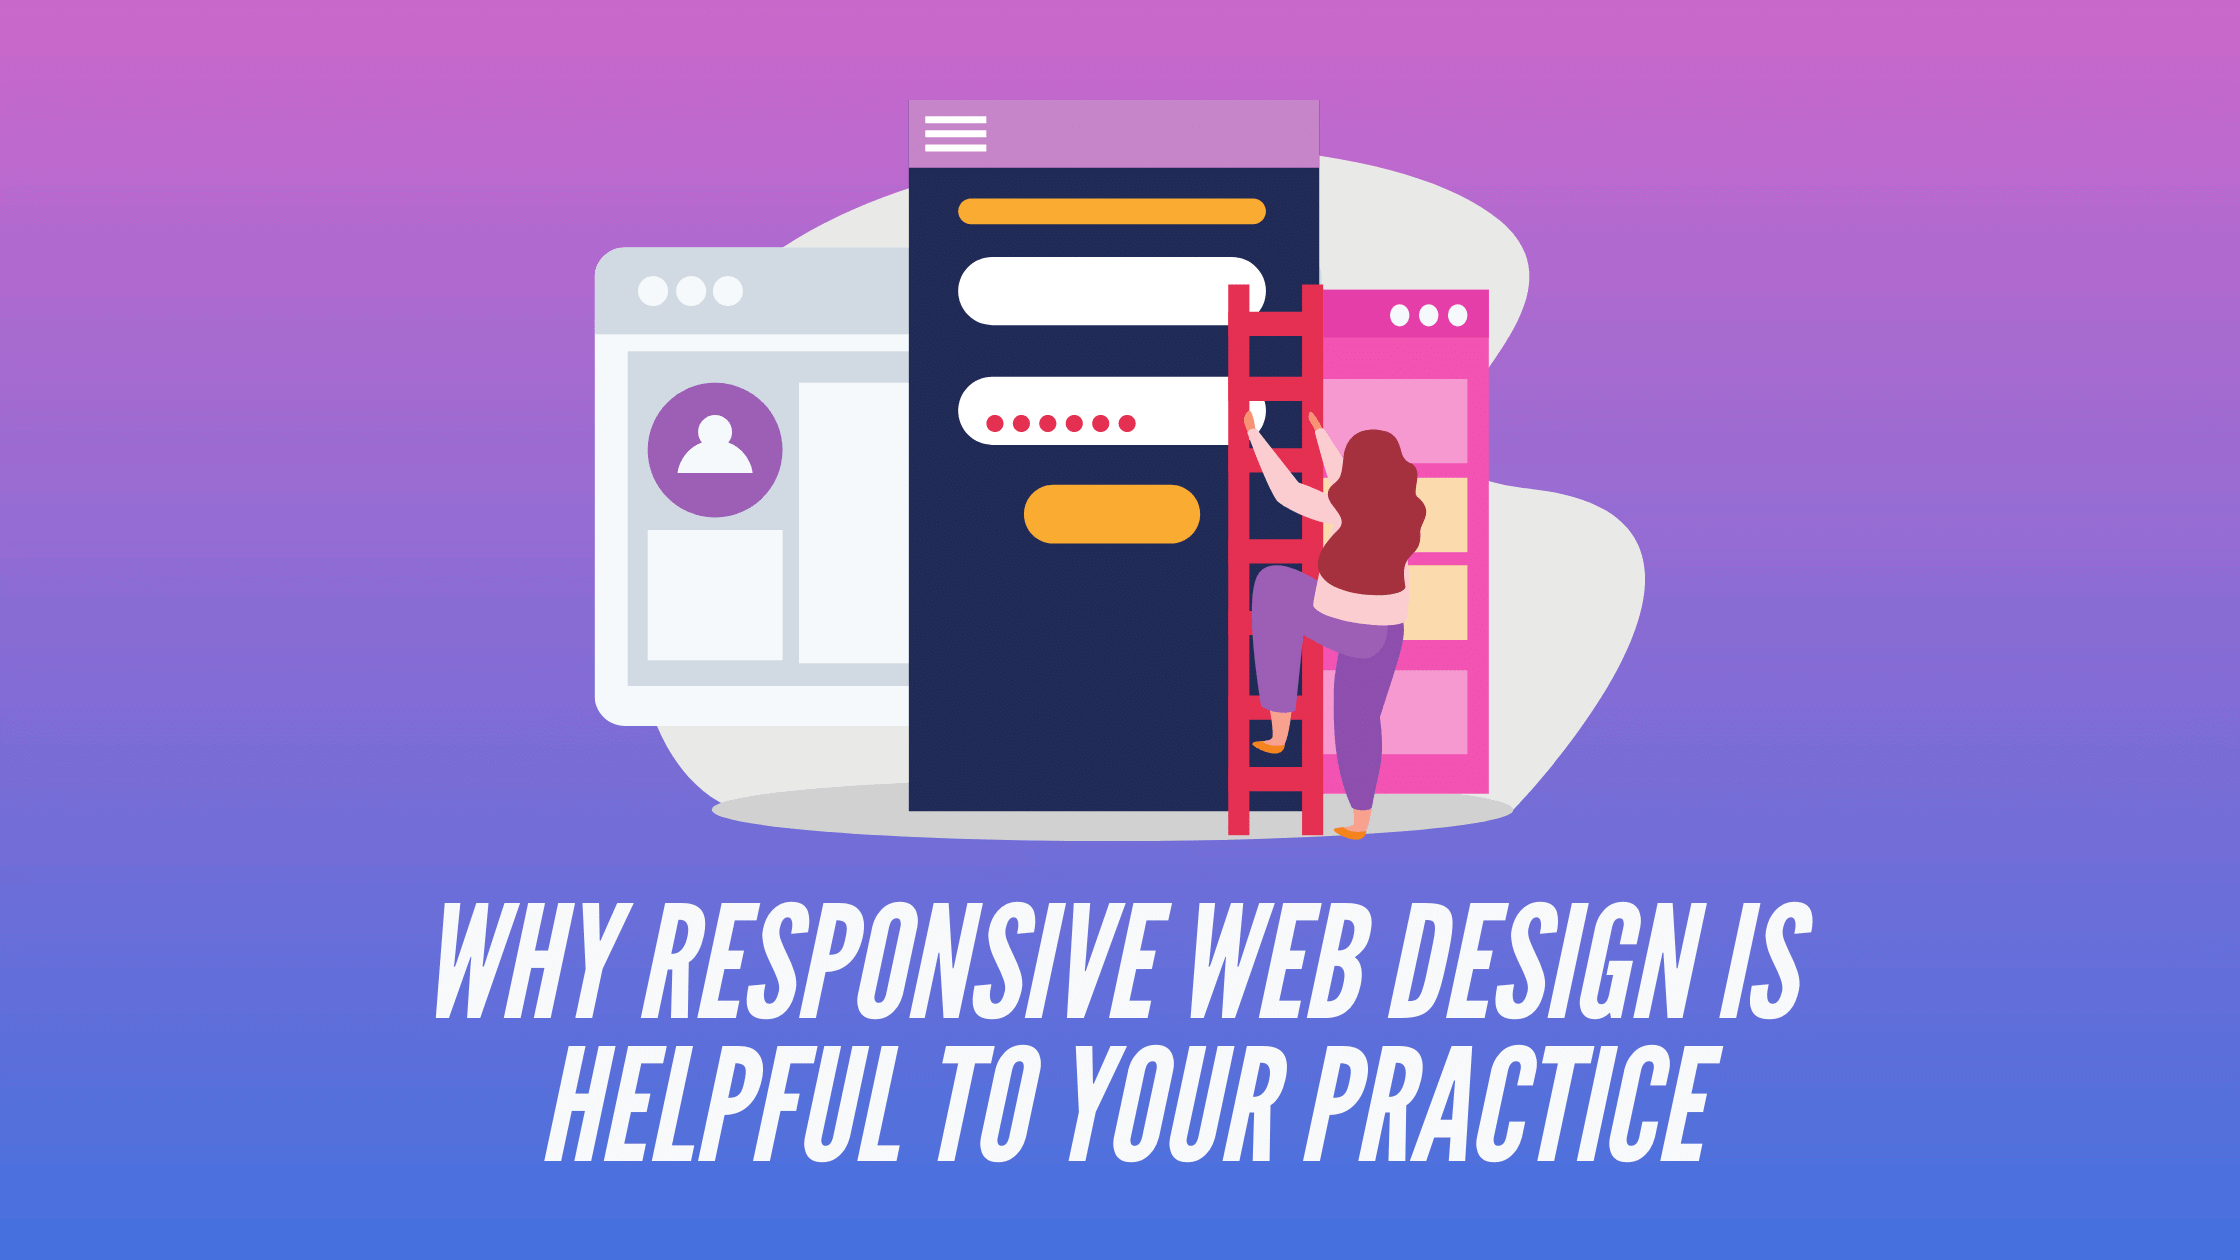 Why Responsive Web Design is Helpful to Your Practice